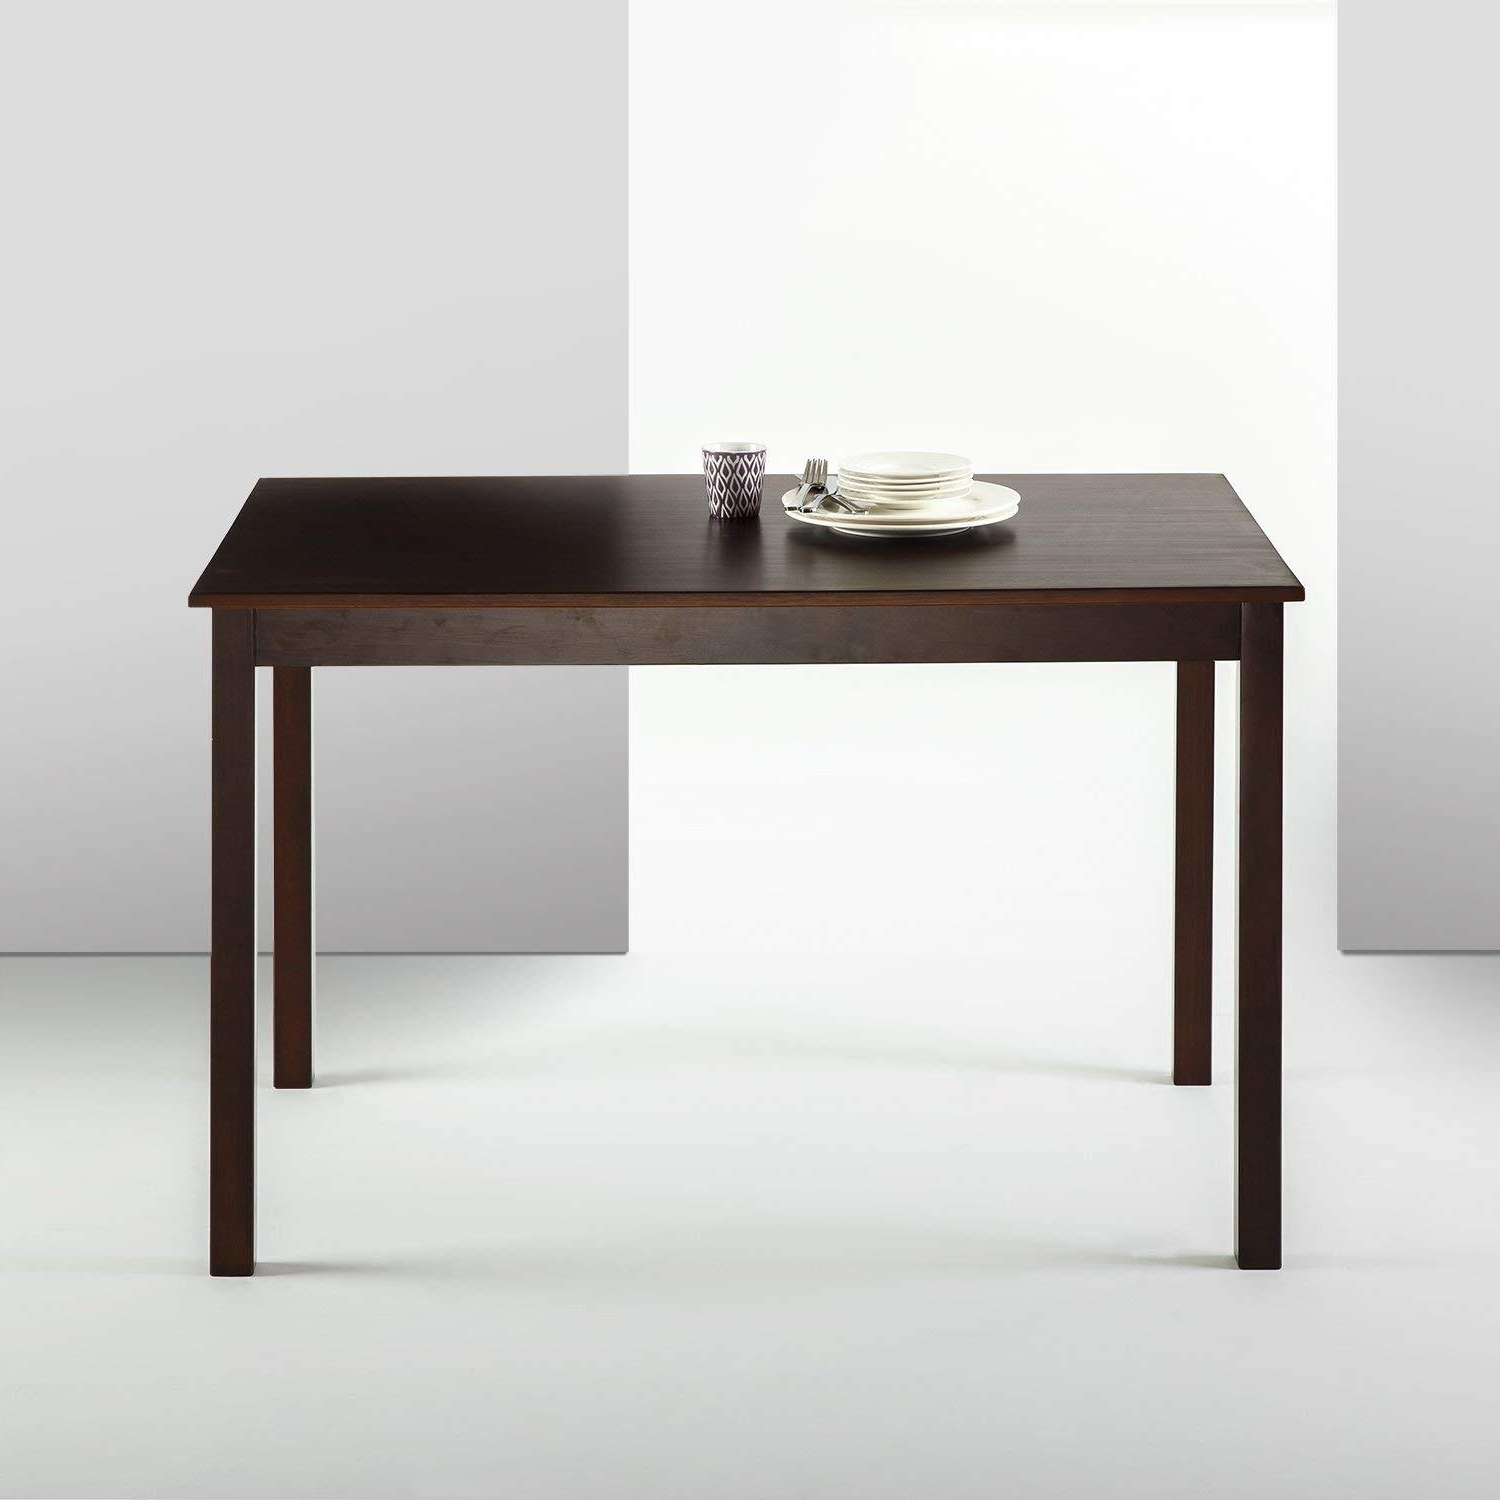 Home Dining Tables – Buy Home Dining Tables At Best Price In Inside Latest Valencia 72 Inch Extension Trestle Dining Tables (Gallery 6 of 25)